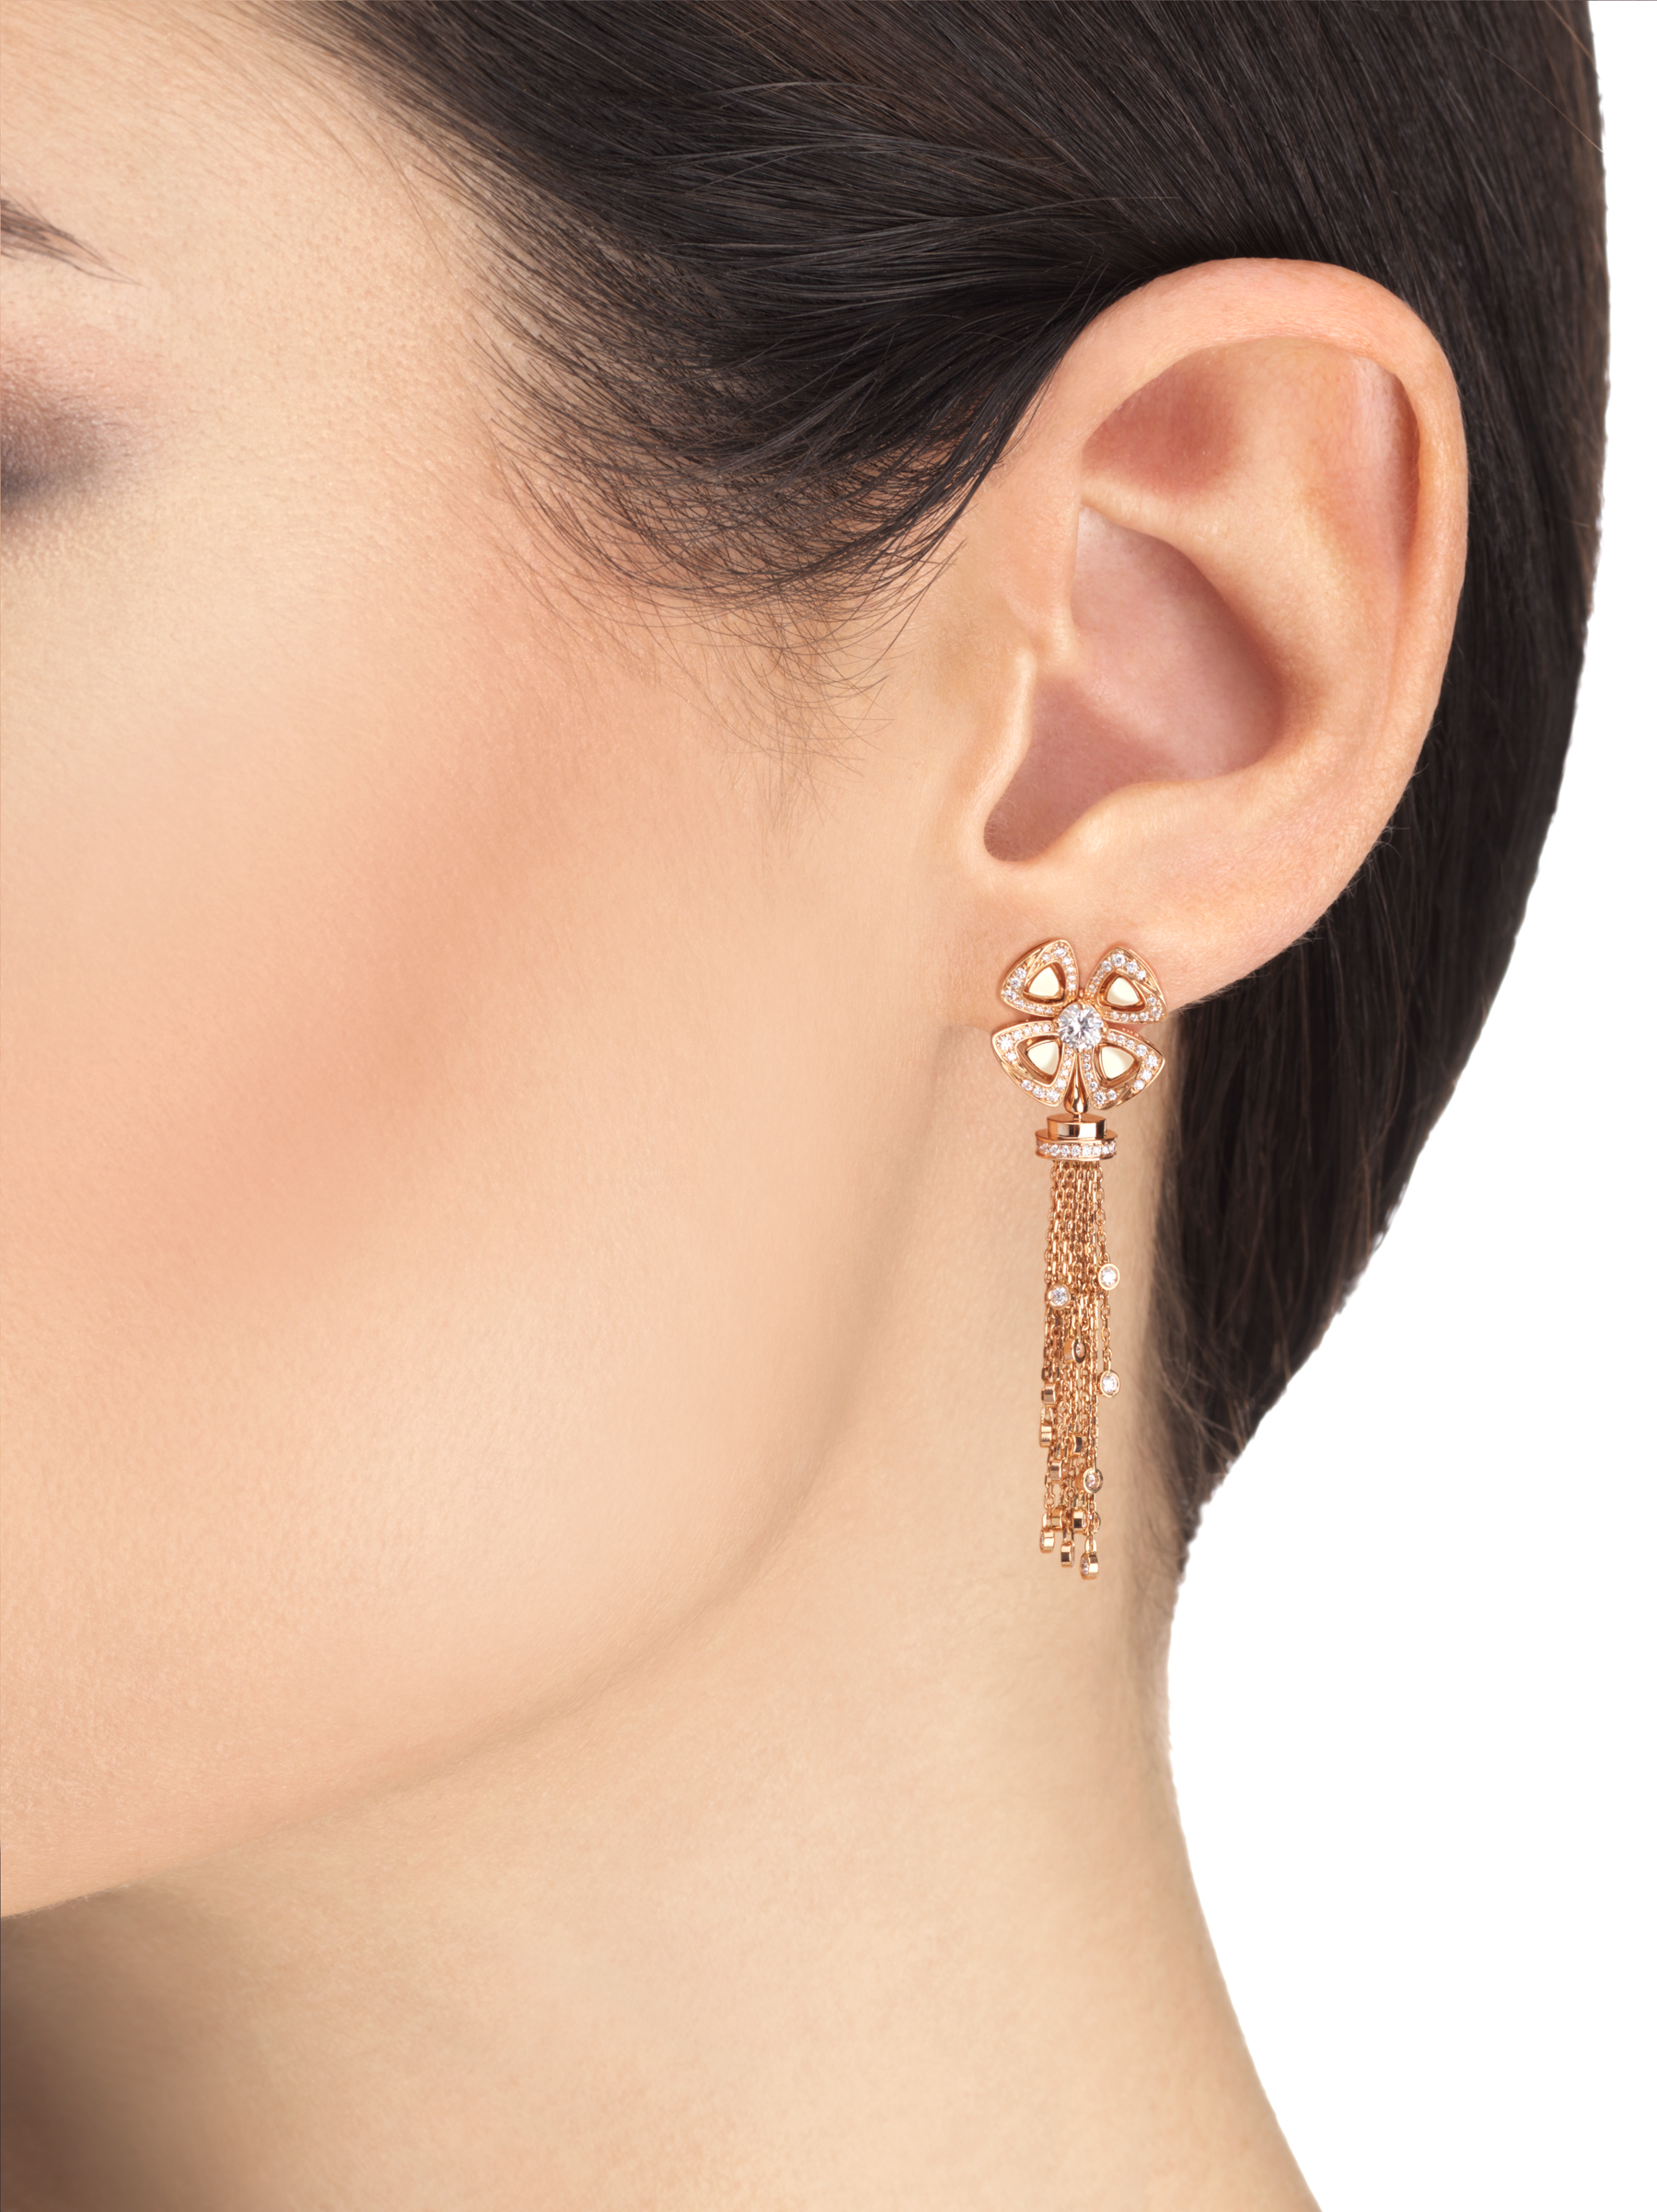 Fiorever 18 kt rose gold pendant earring, set with round brilliant-cut diamonds and pavé diamonds. 357322 image 3